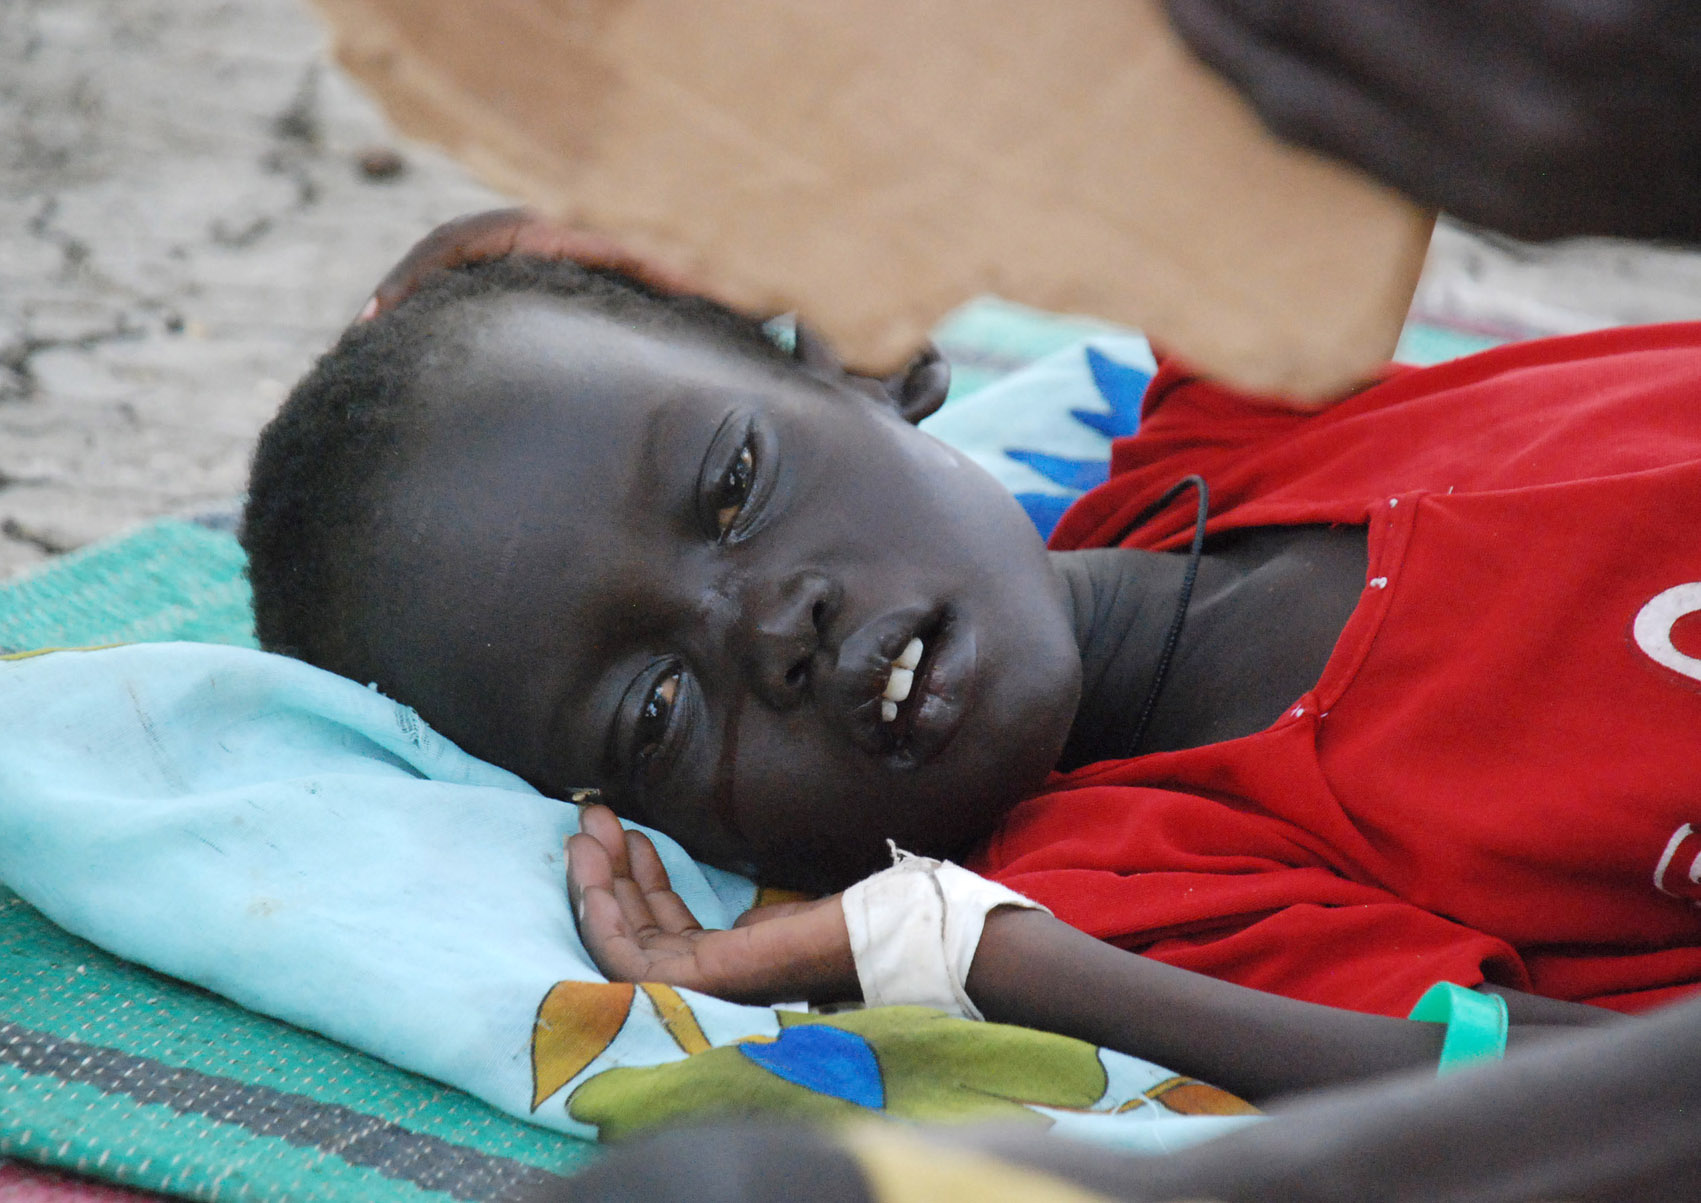 A southern Sudanese child being treated for kala azar disease rests in the grounds of Malakal hospital, Upper Nile state